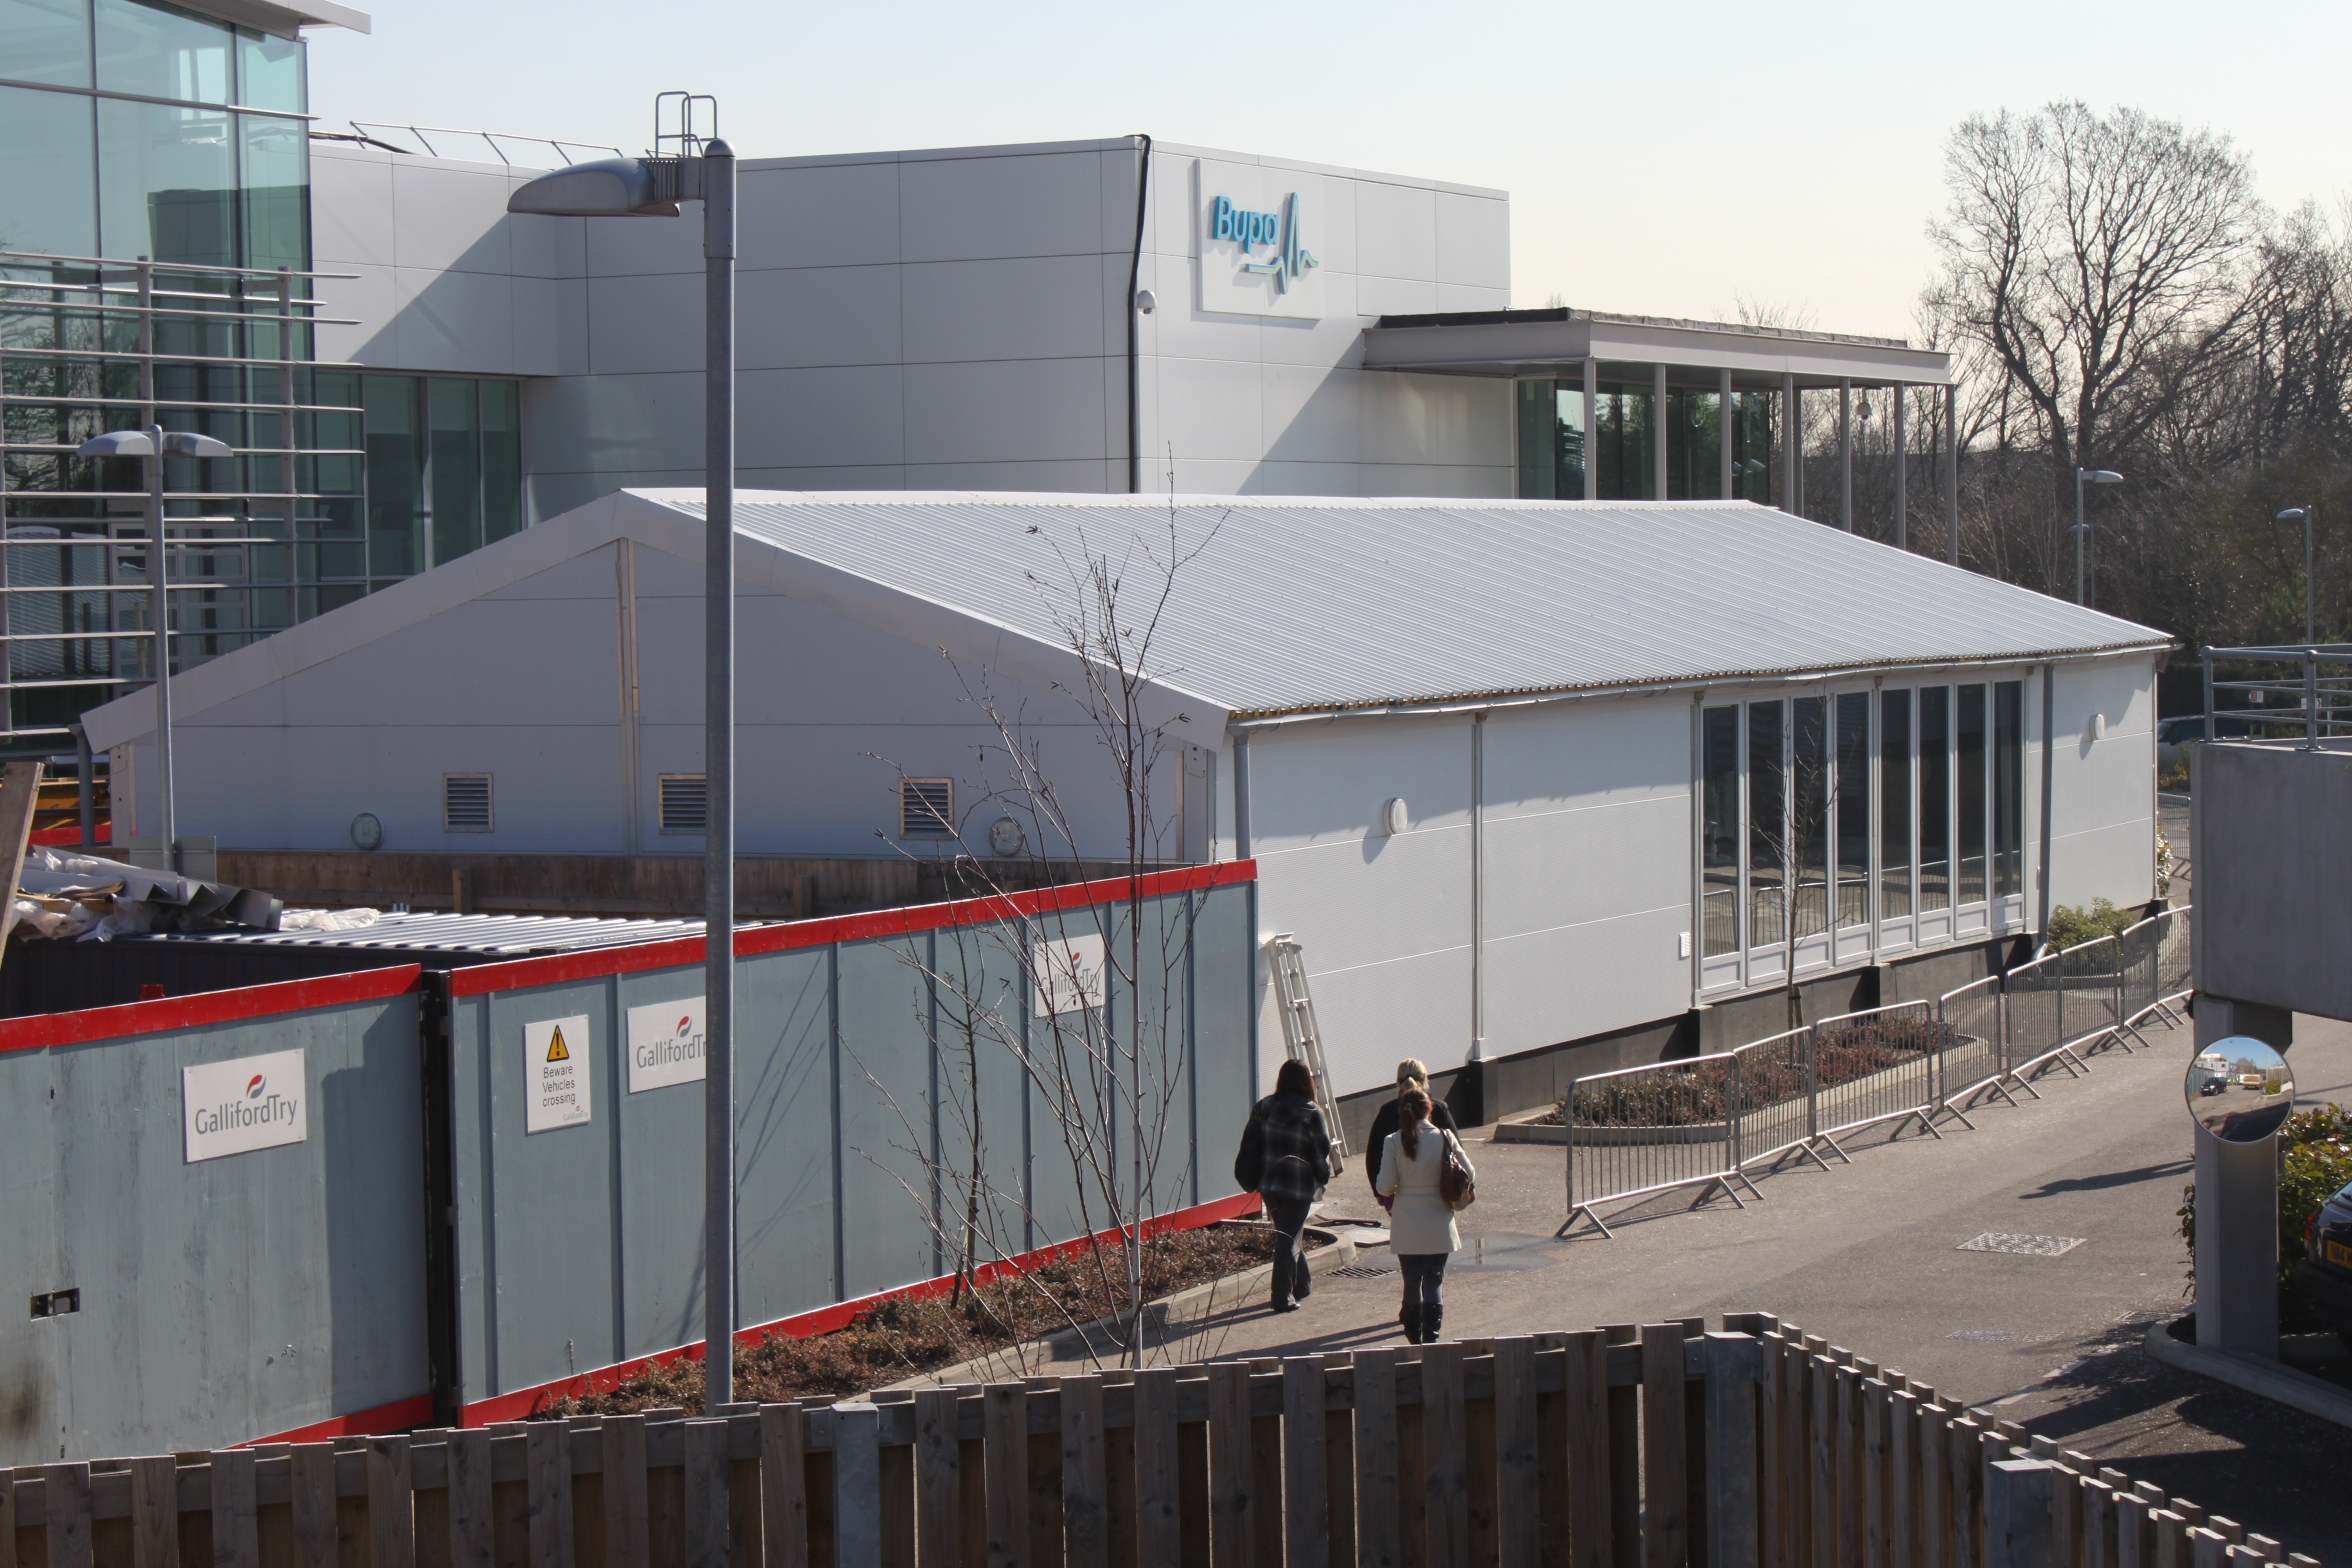 Bupa Temporary Hospital Solid Roof